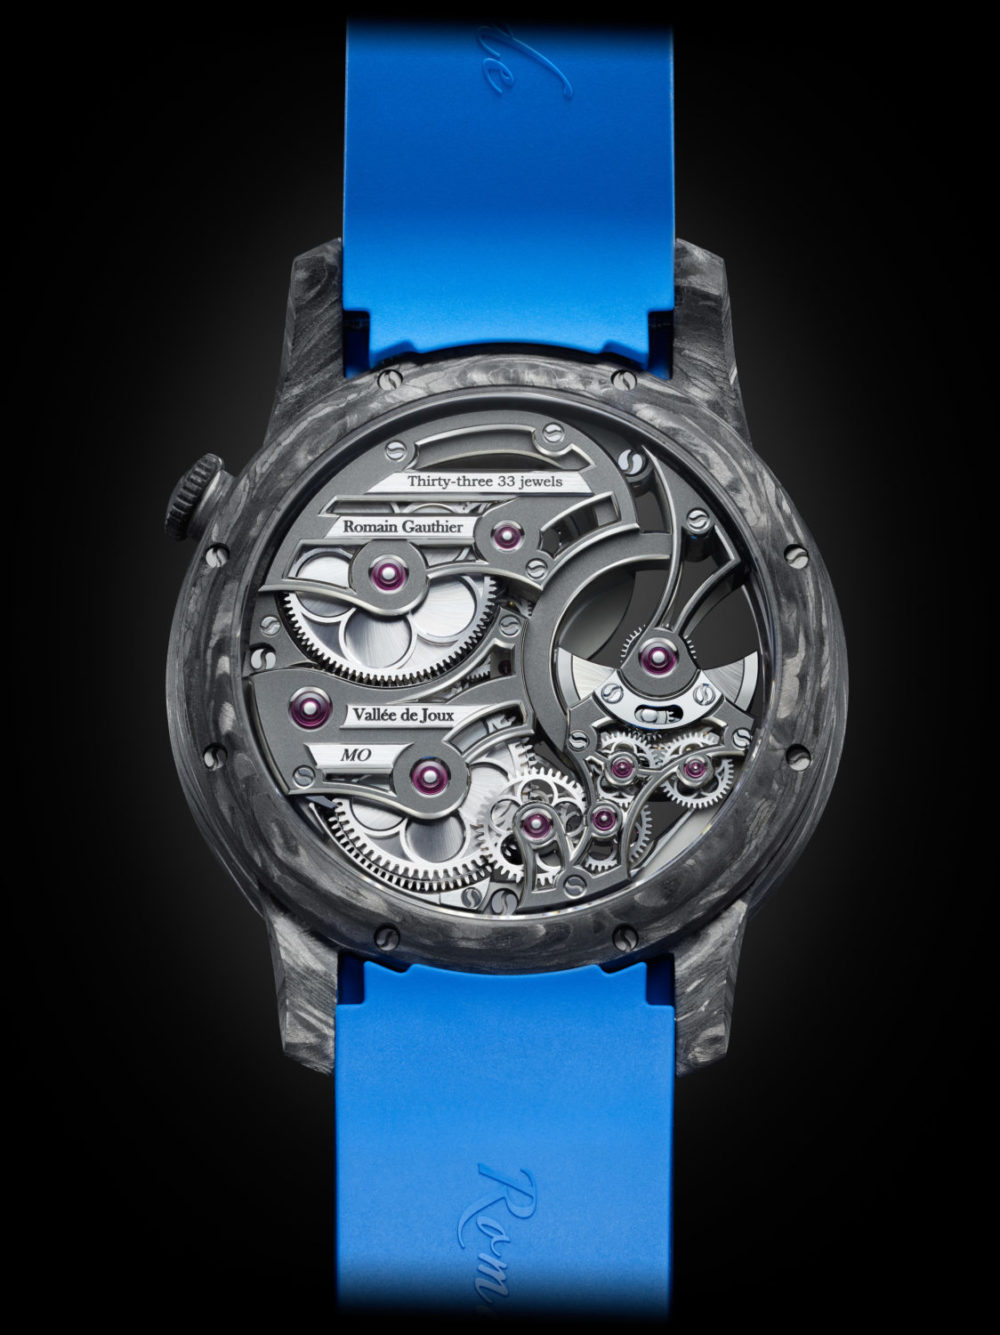 Romain Gauthier's Insight Micro-rotor Squelette Manufacture-Only Carbonium Edition